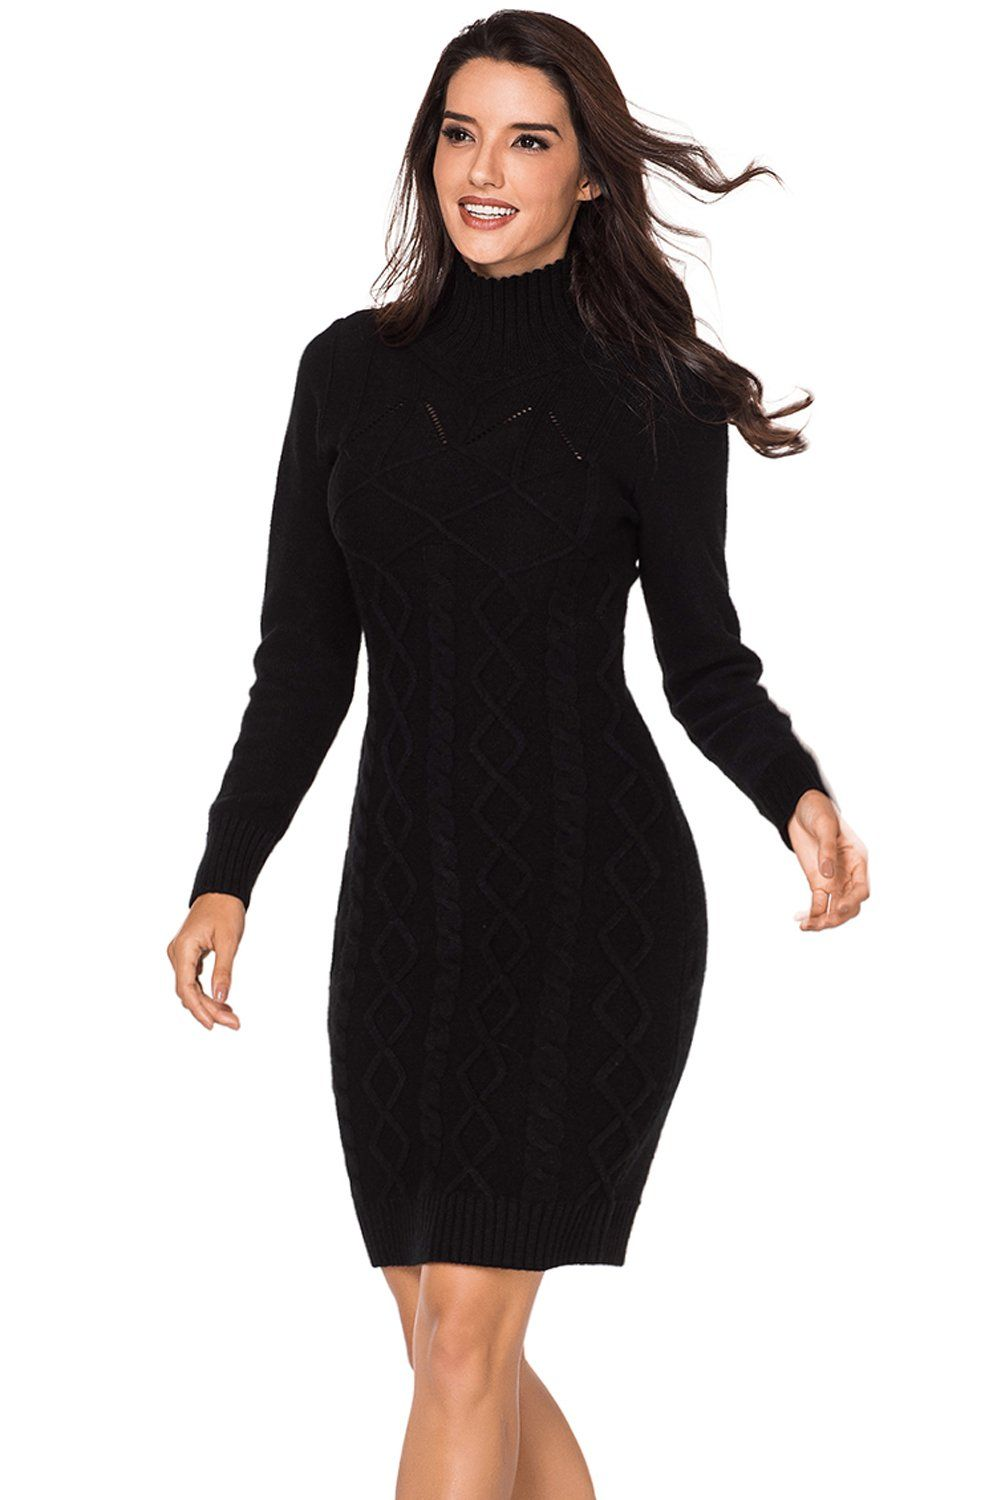 f2148cf0ad95 Robe Pull Femme Hiver Noire Tricot de Cable Col Roule Pas Cher www.modebuy.